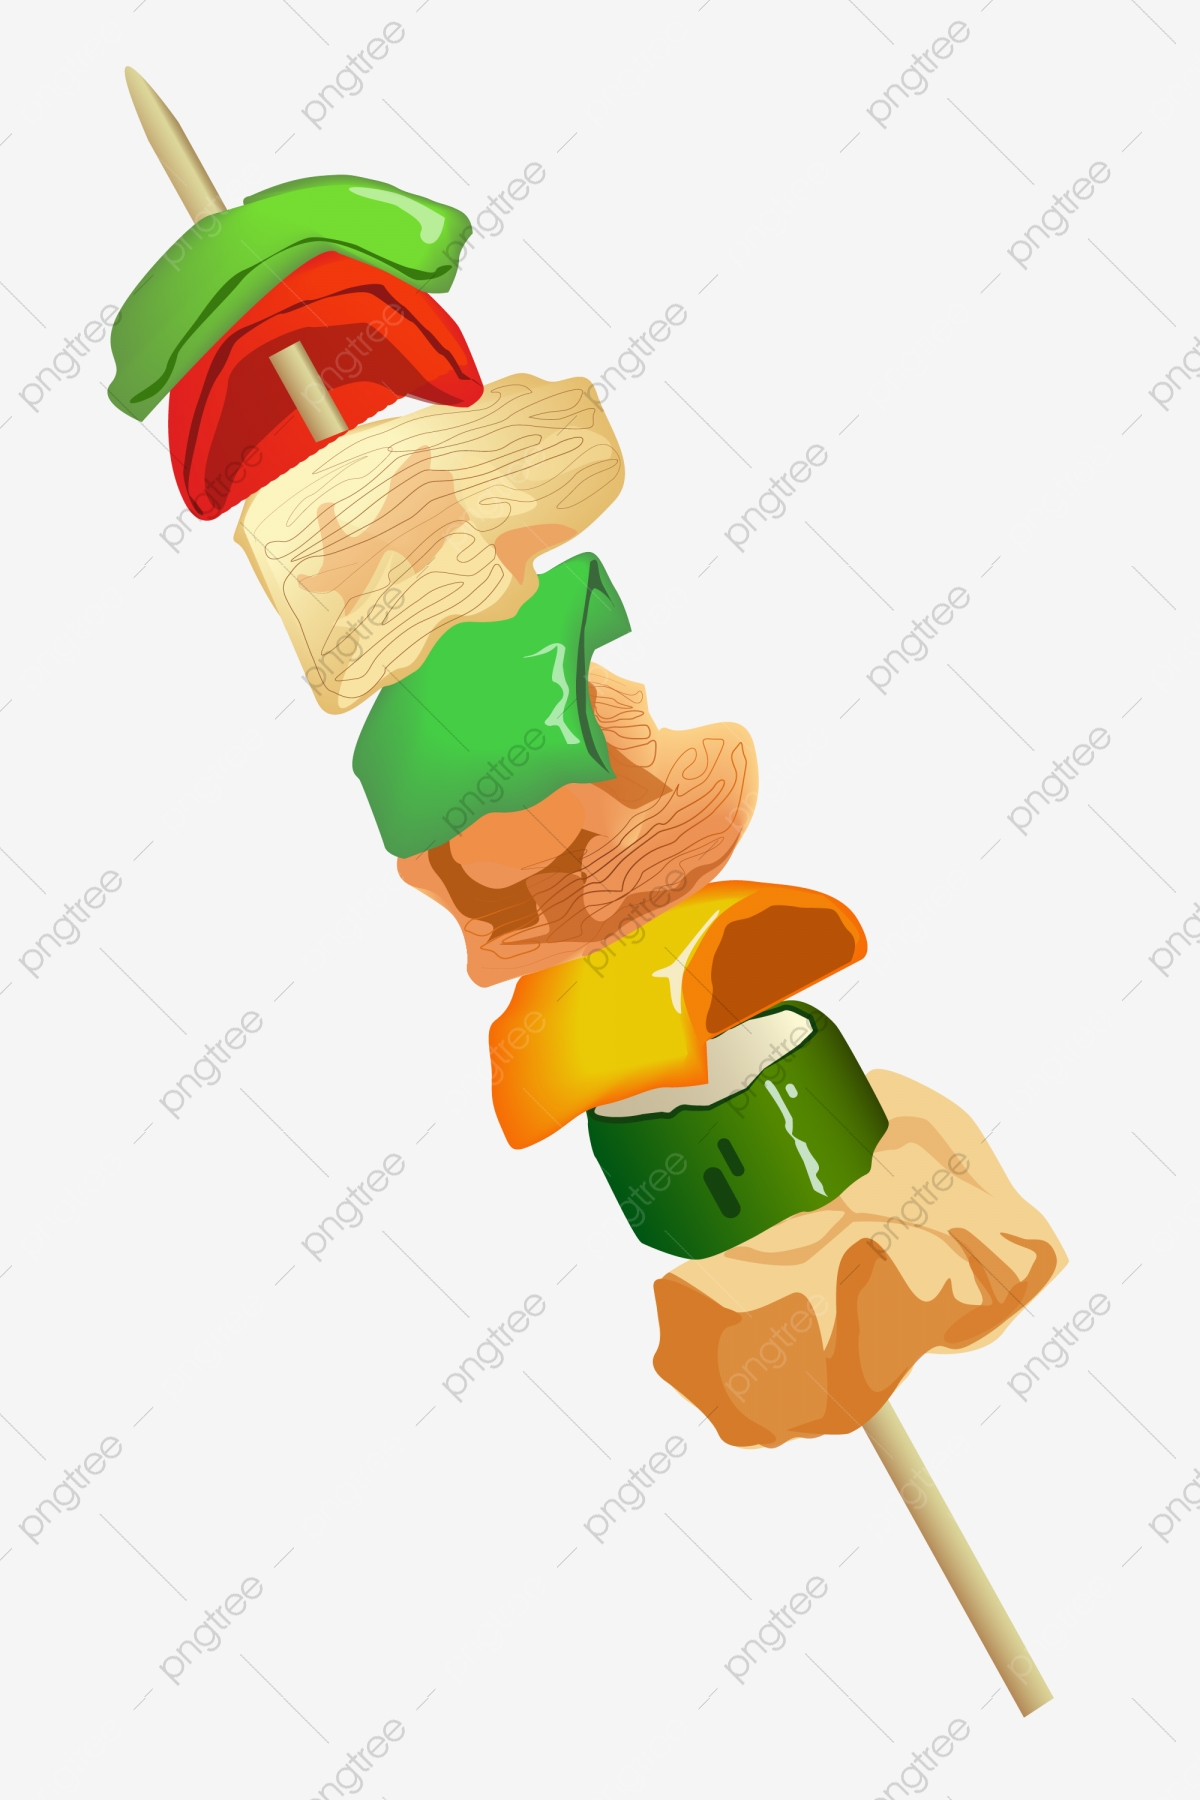 Free Barbeque Clipart, Download Free Clip Art, Free Clip Art on Clipart  Library